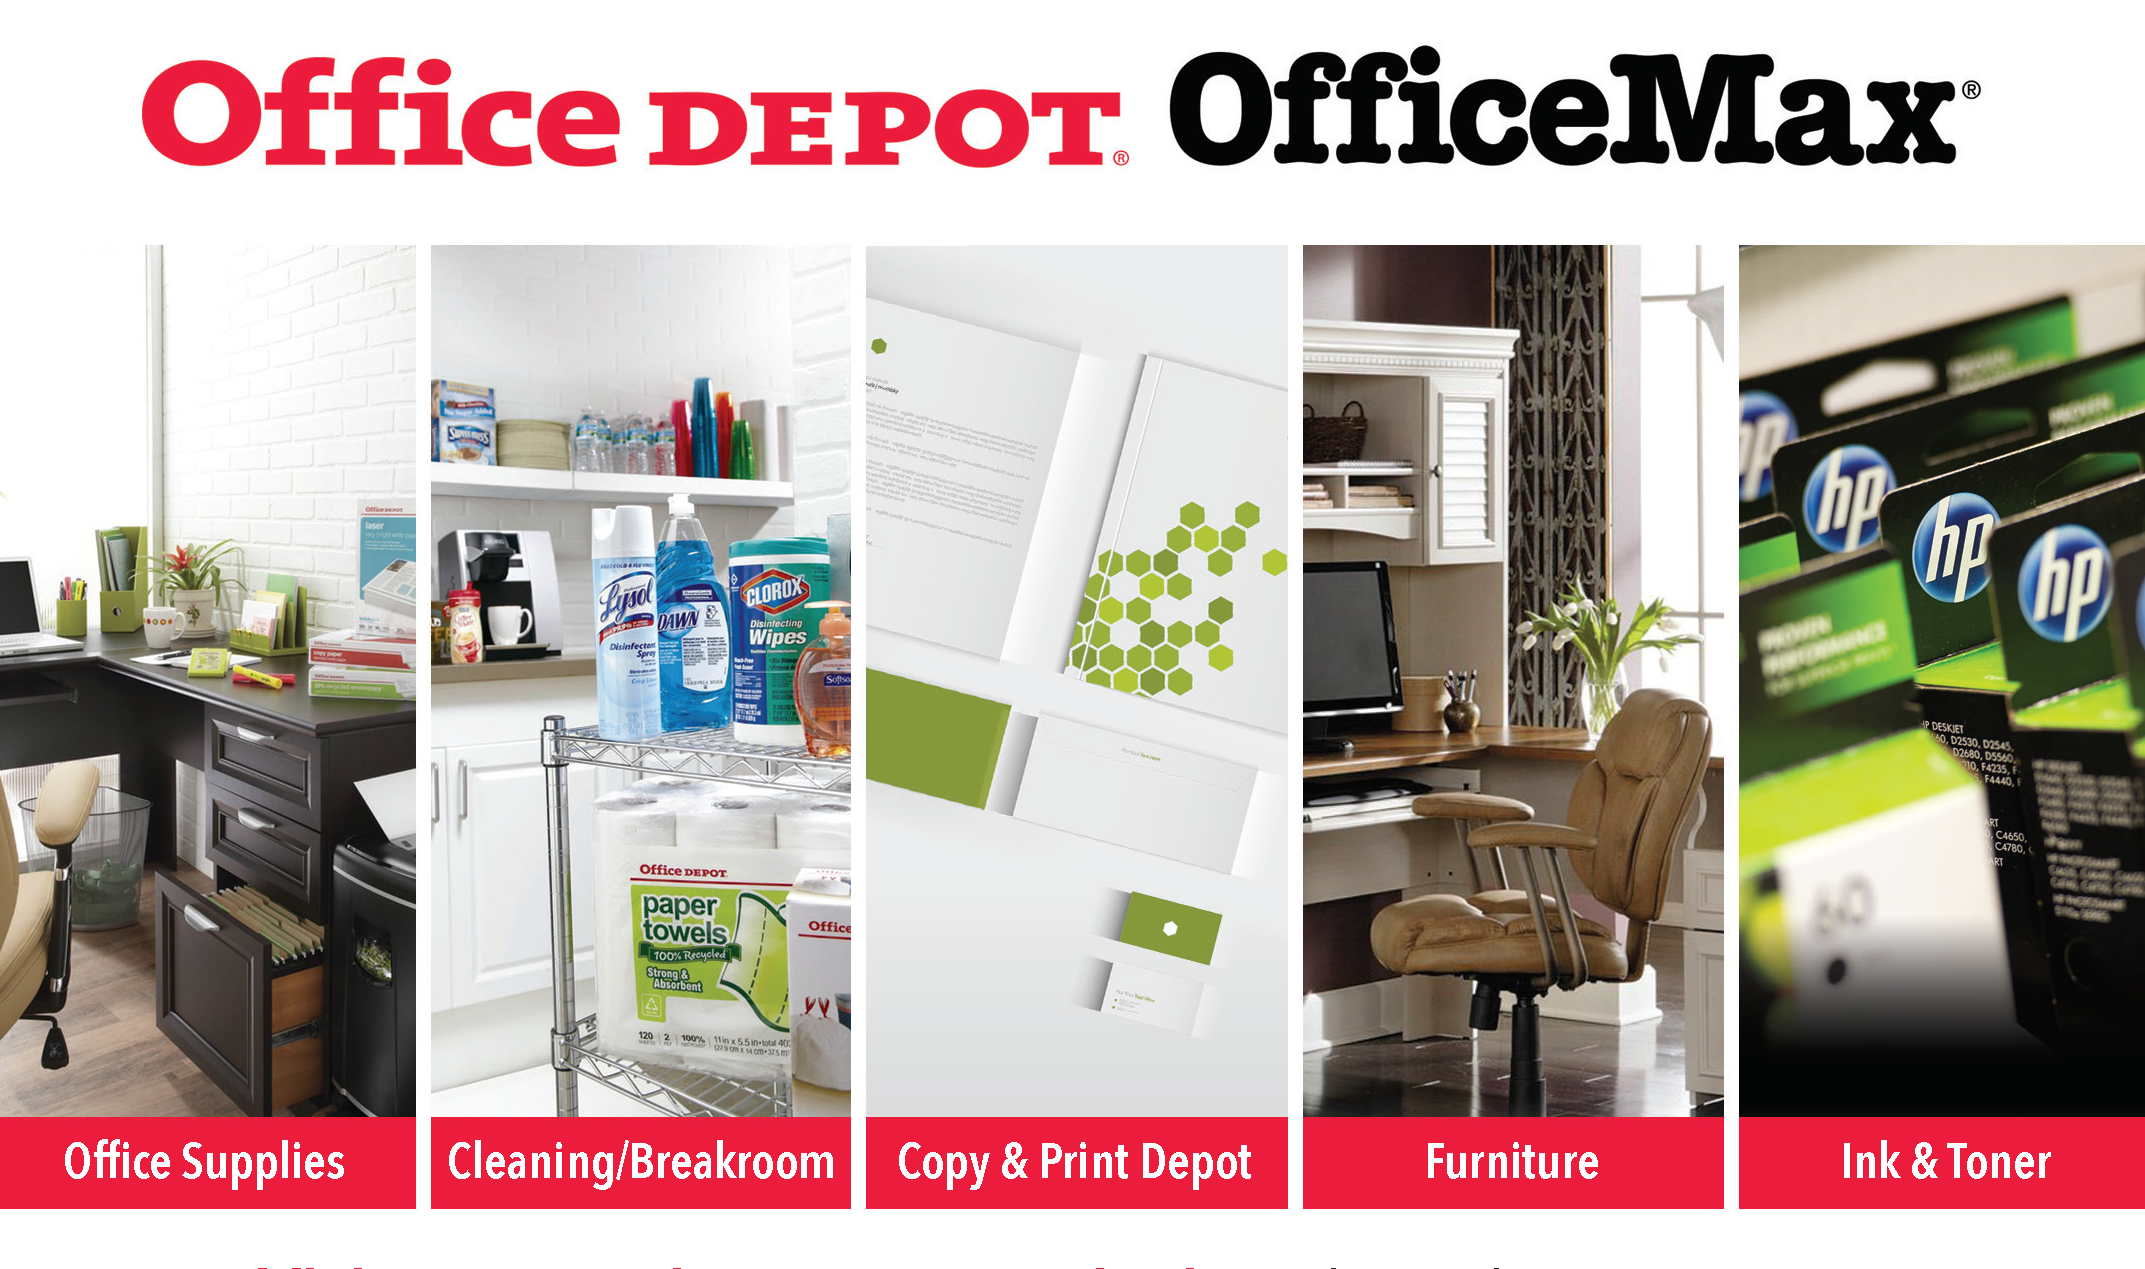 office supplies & furniture - windfall